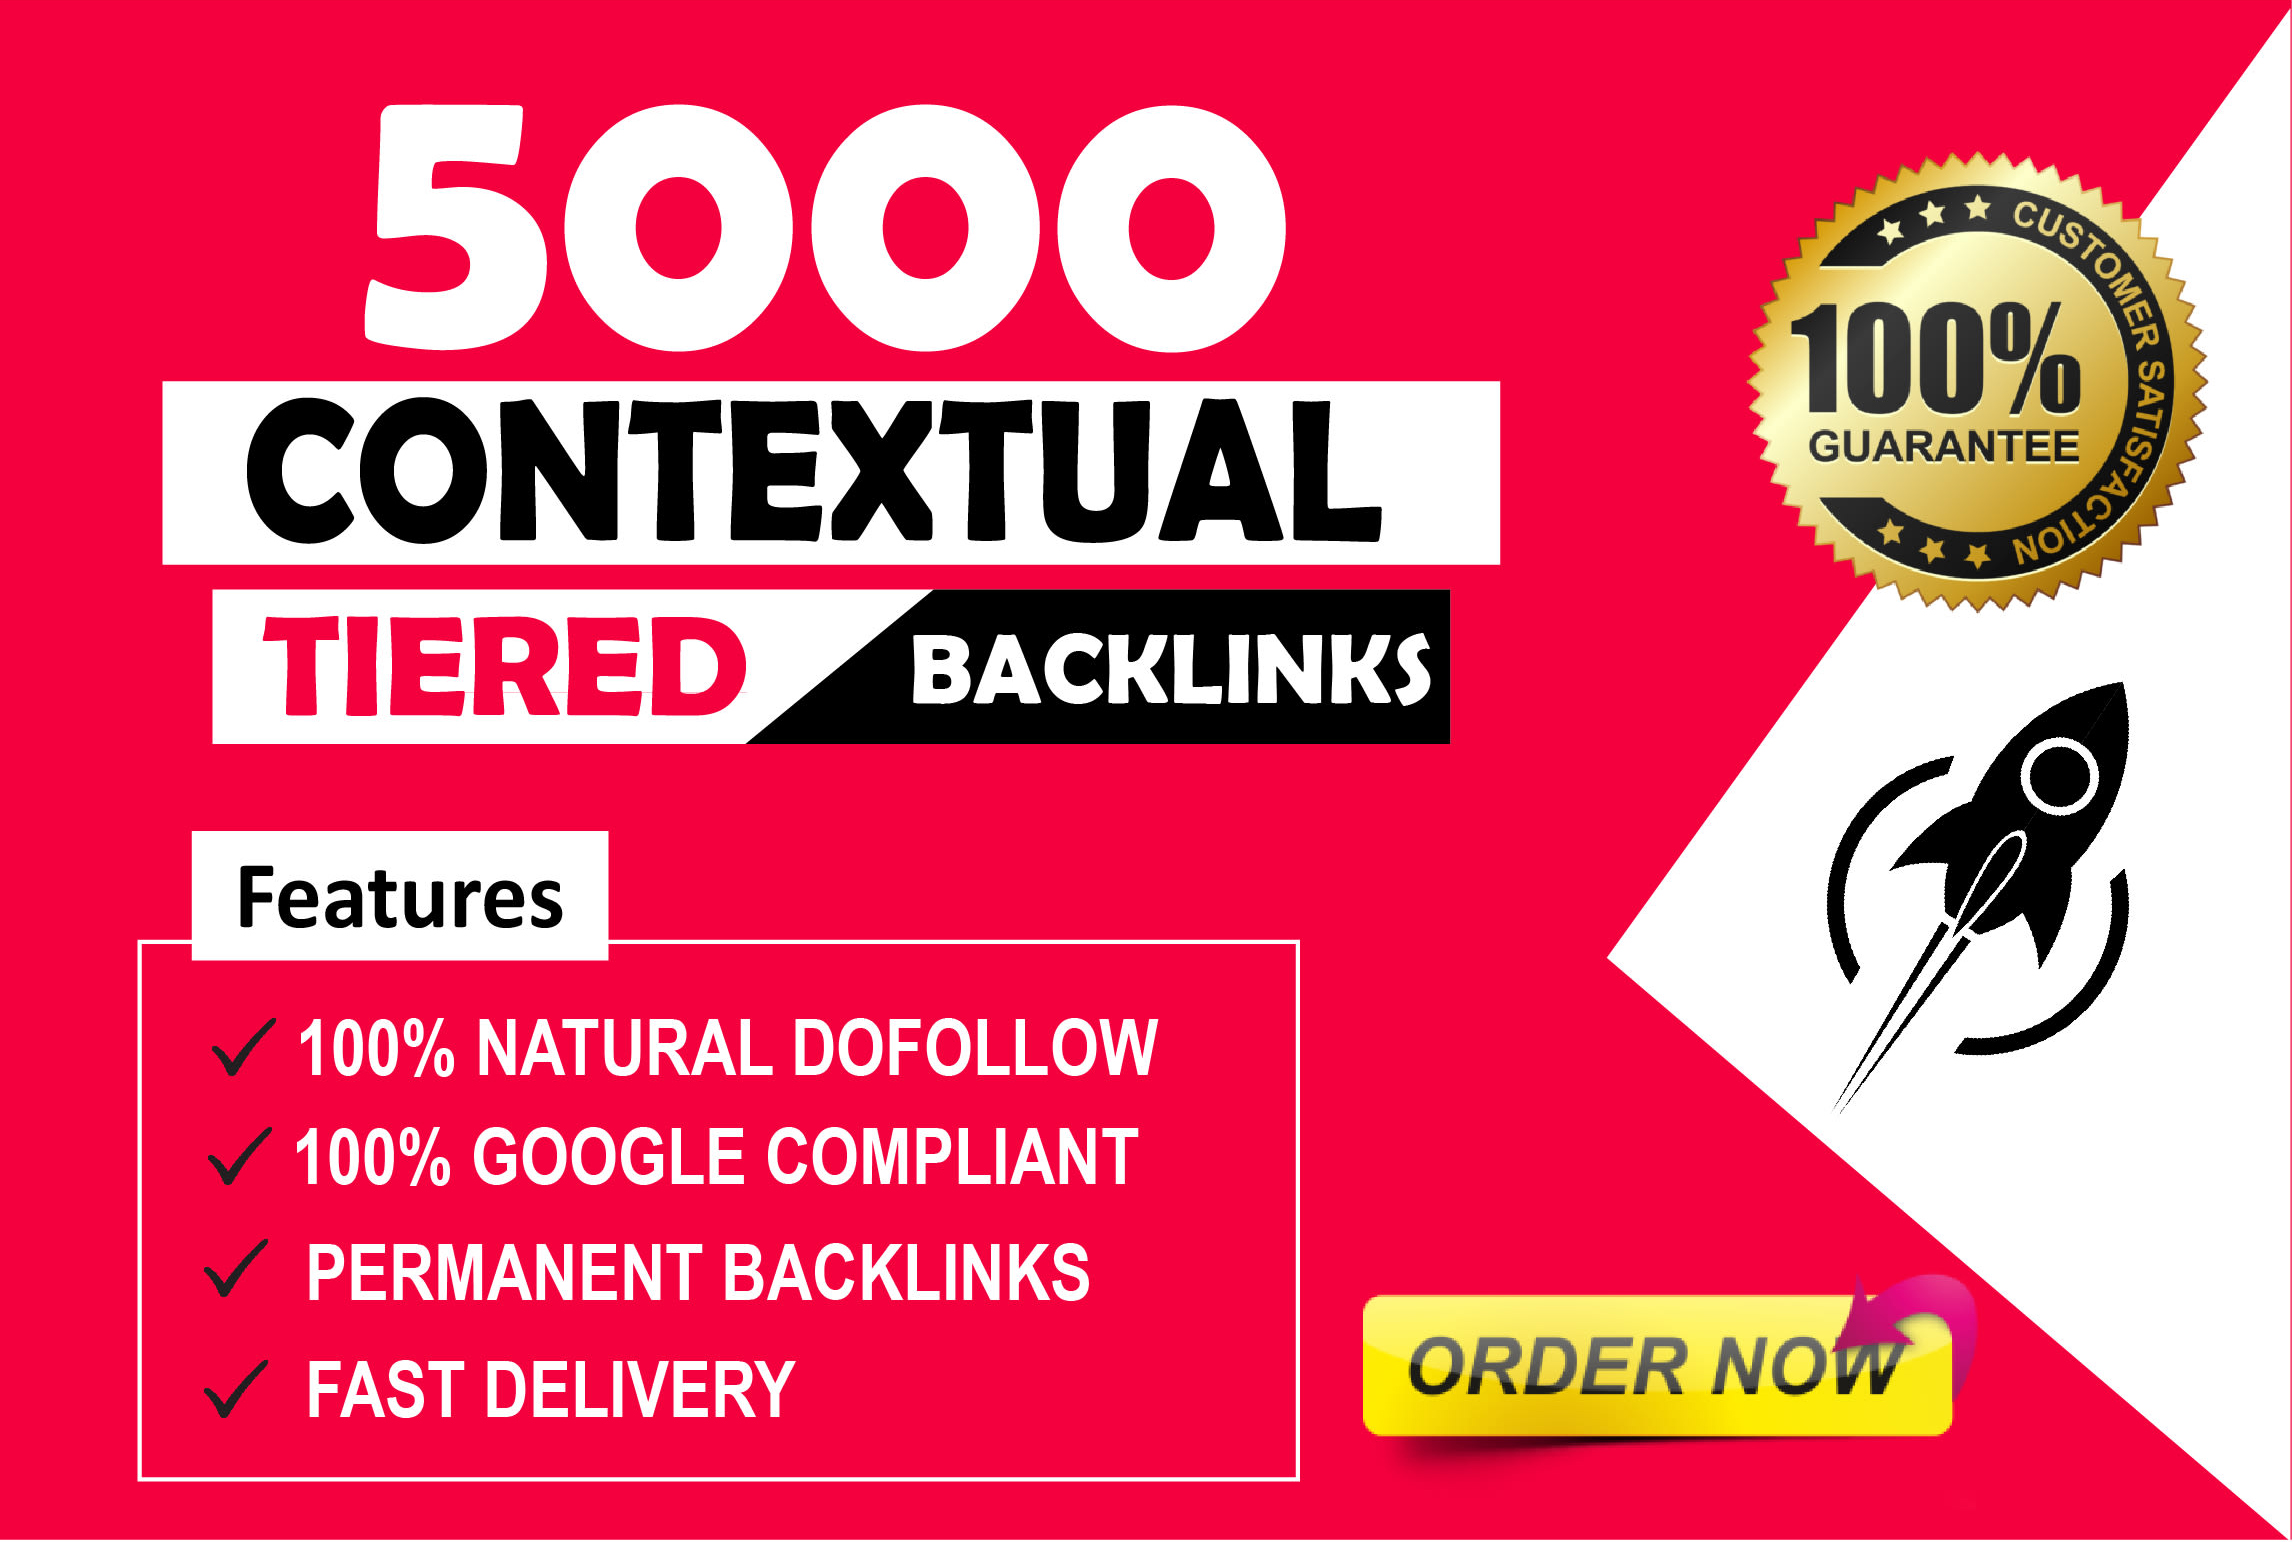 create 5000 contextual tiered dofollow backlinks for google ranking